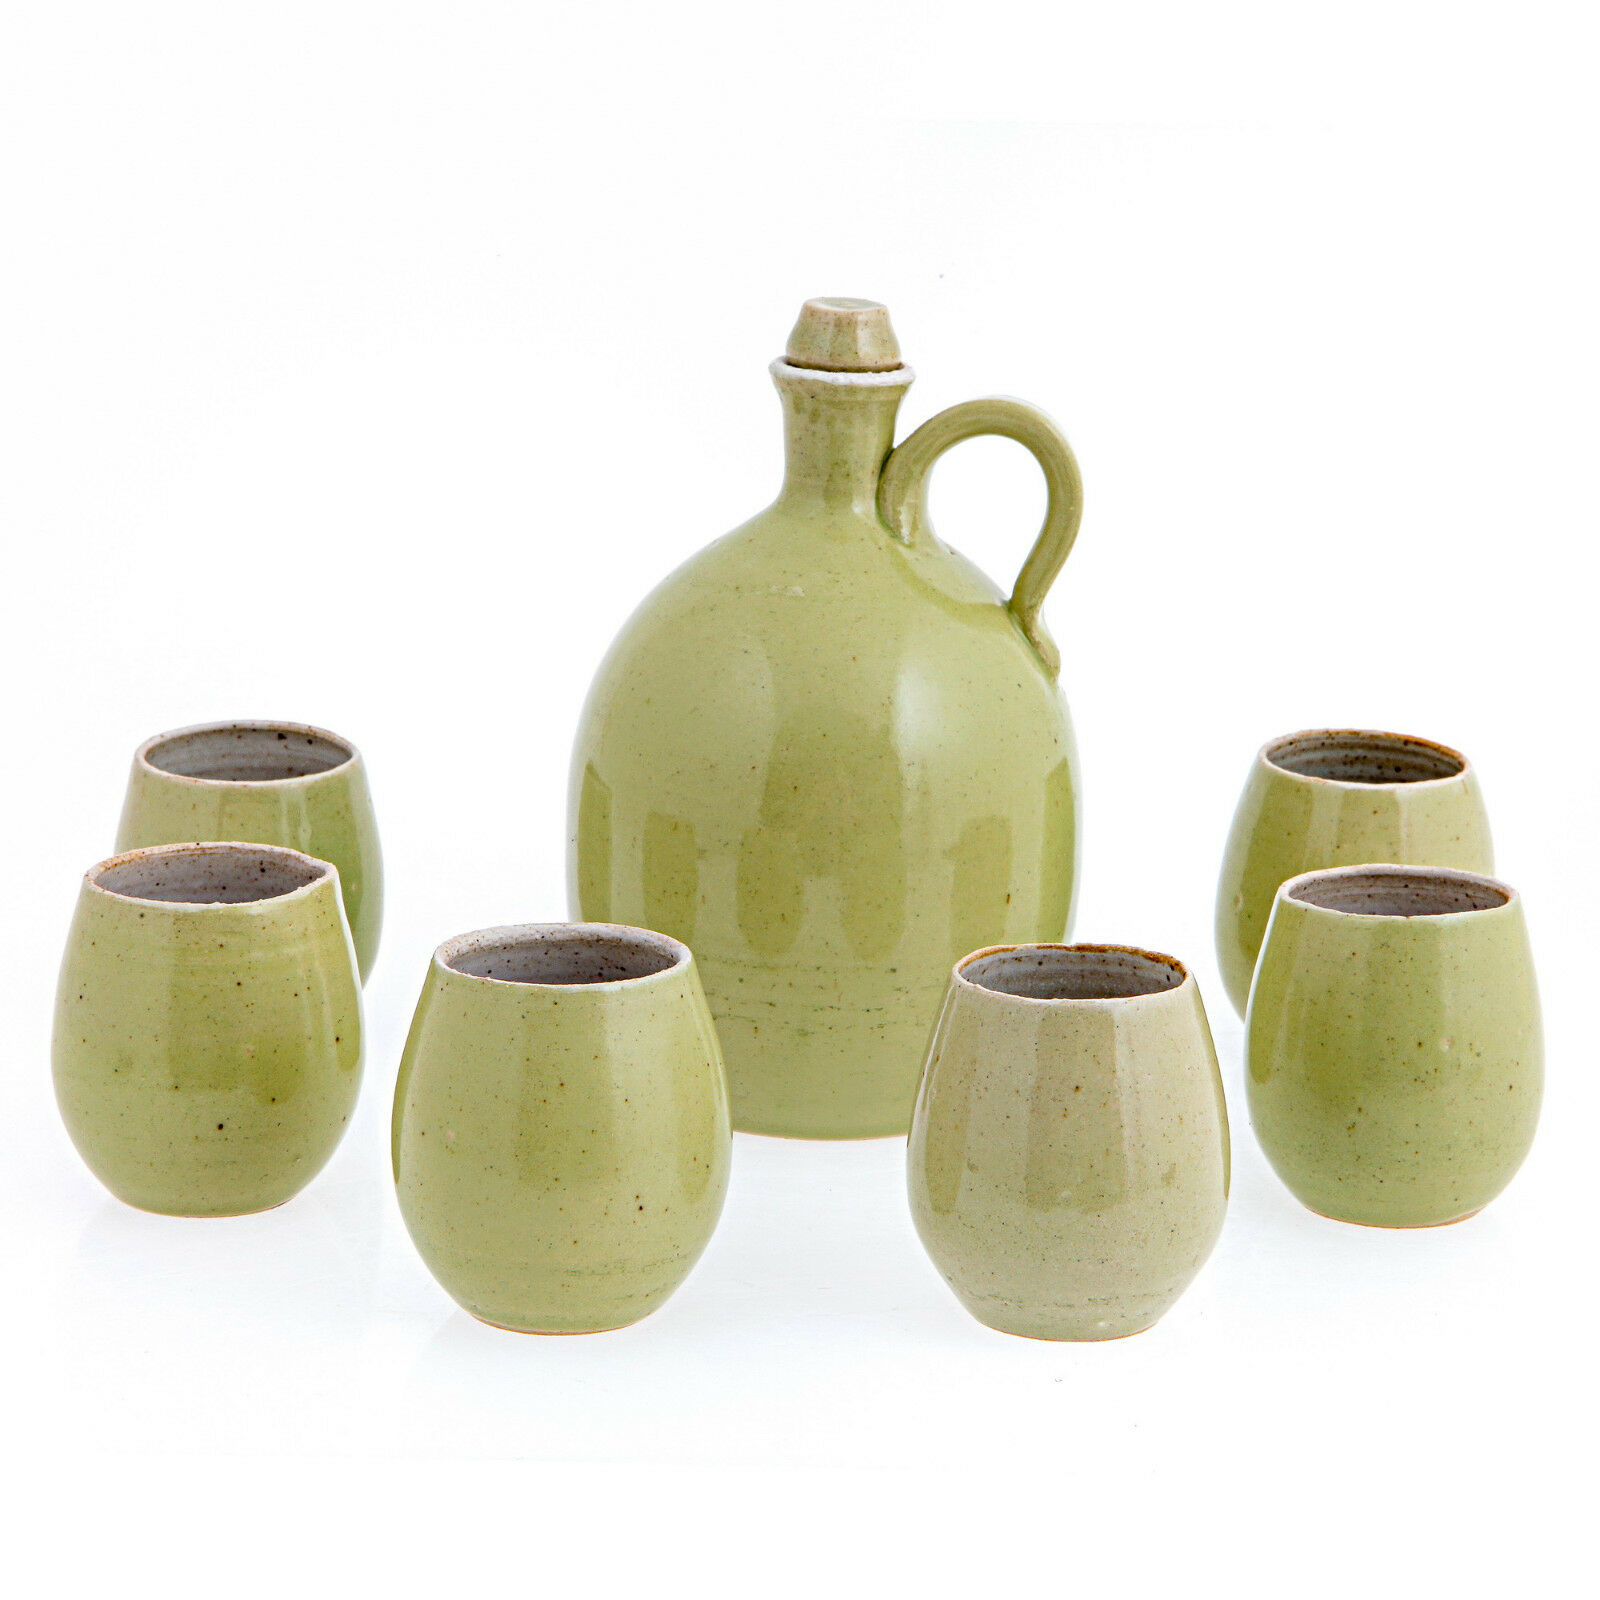 Liquor Decanter and Glasses Set - 7 Pcs Ceramic Drink Serving Set - Olive vert